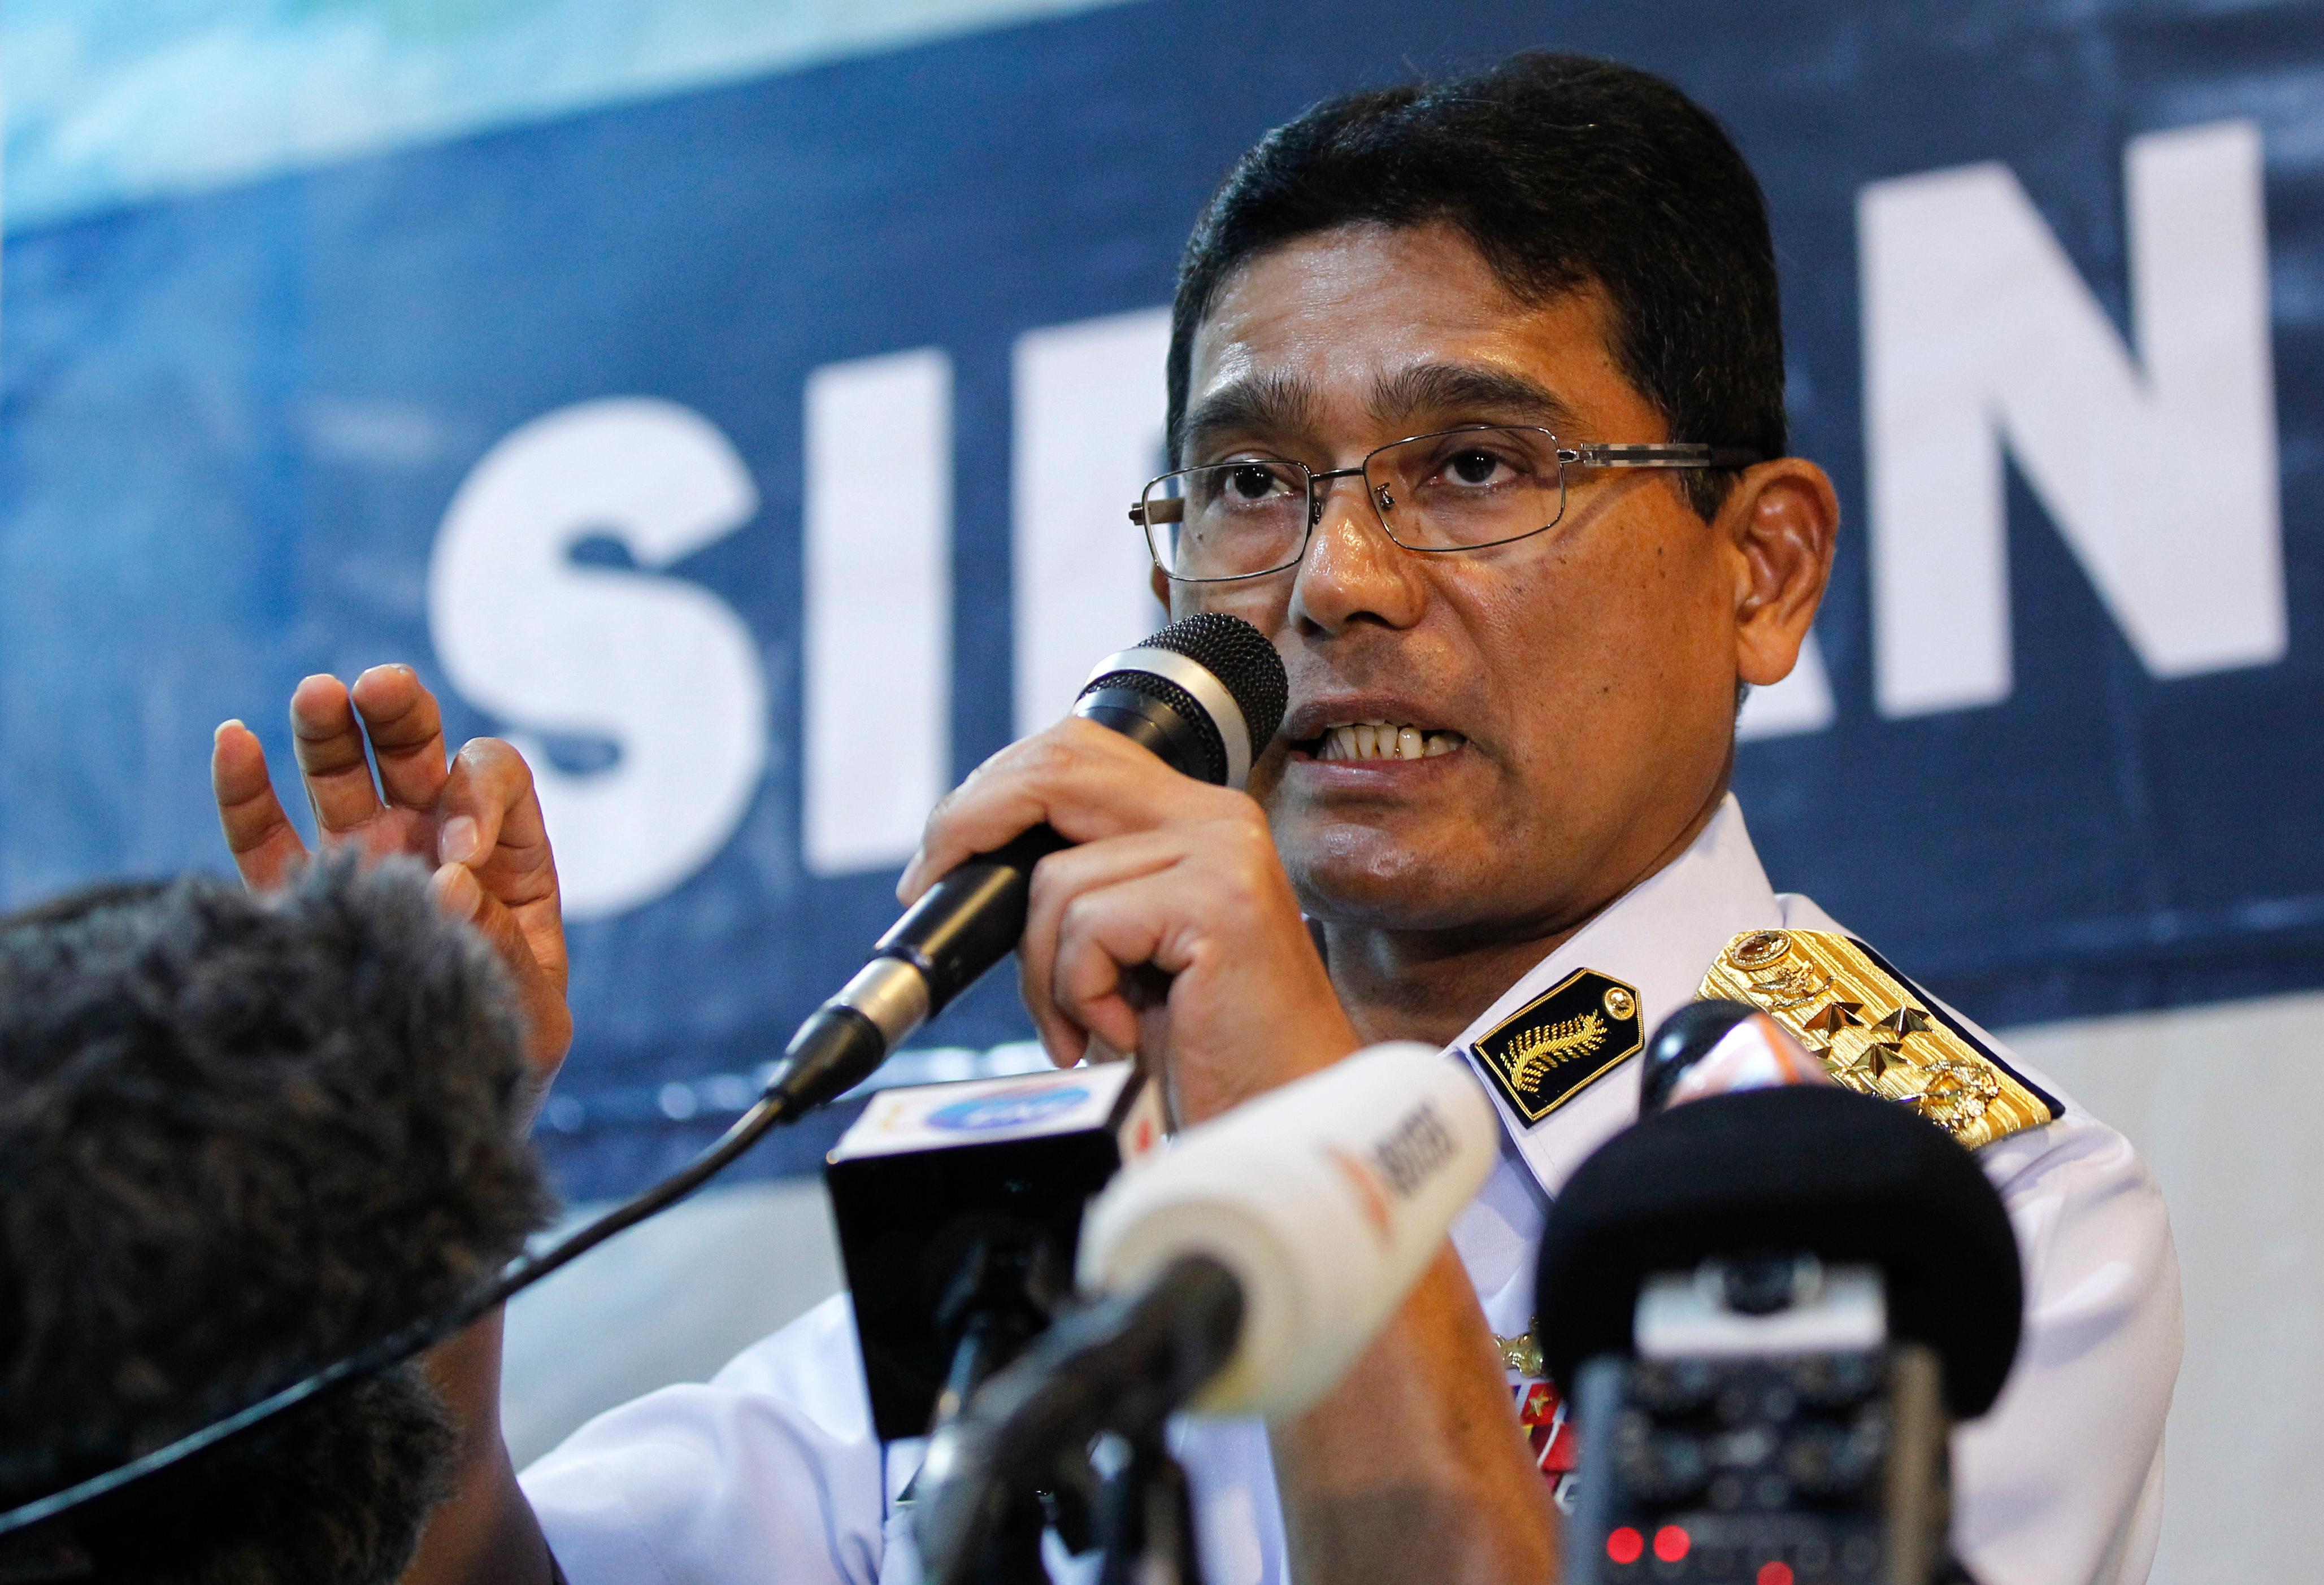 "Malaysian Maritime Director Indera Abu Bakar speaks during a press conference about a collision of the USS John S. McCain in Putrajaya, Malaysia, Monday, Aug. 21, 2017. The U.S. Navy said the USS John S. McCain arrived at Singapore's naval base with ""significant damage"" to its hull after a collision early Monday between it and an oil tanker east of Singapore. A number of U.S. sailors are missing after the collision, the second accident involving a ship from the Navy's 7th Fleet in the Pacific in two months. (AP Photo/Daniel Chan)"